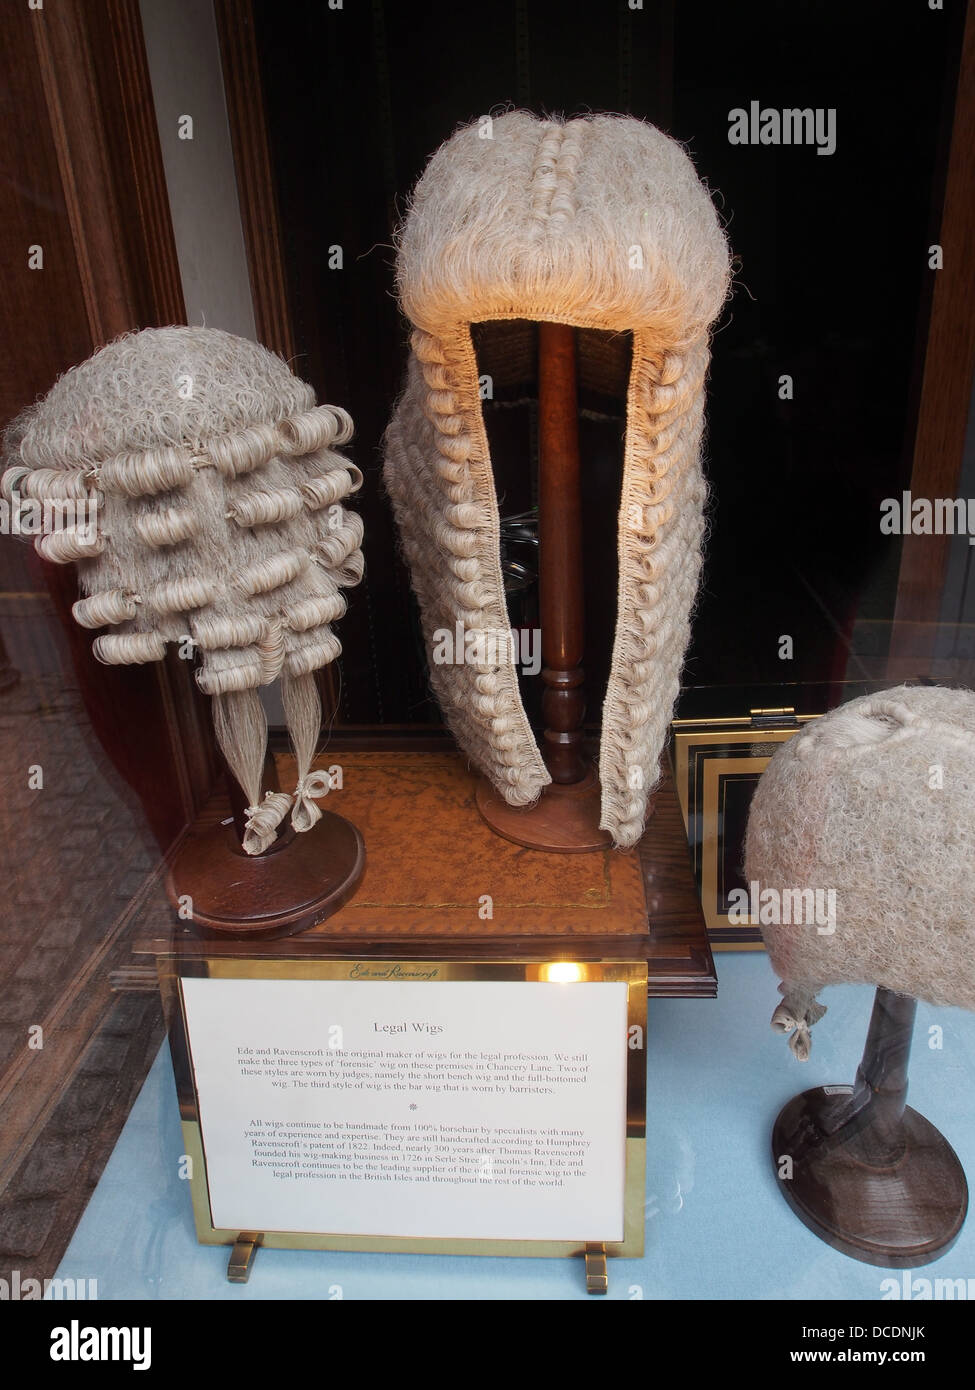 Vente de vitrines Londres barristers perruques Photo Stock